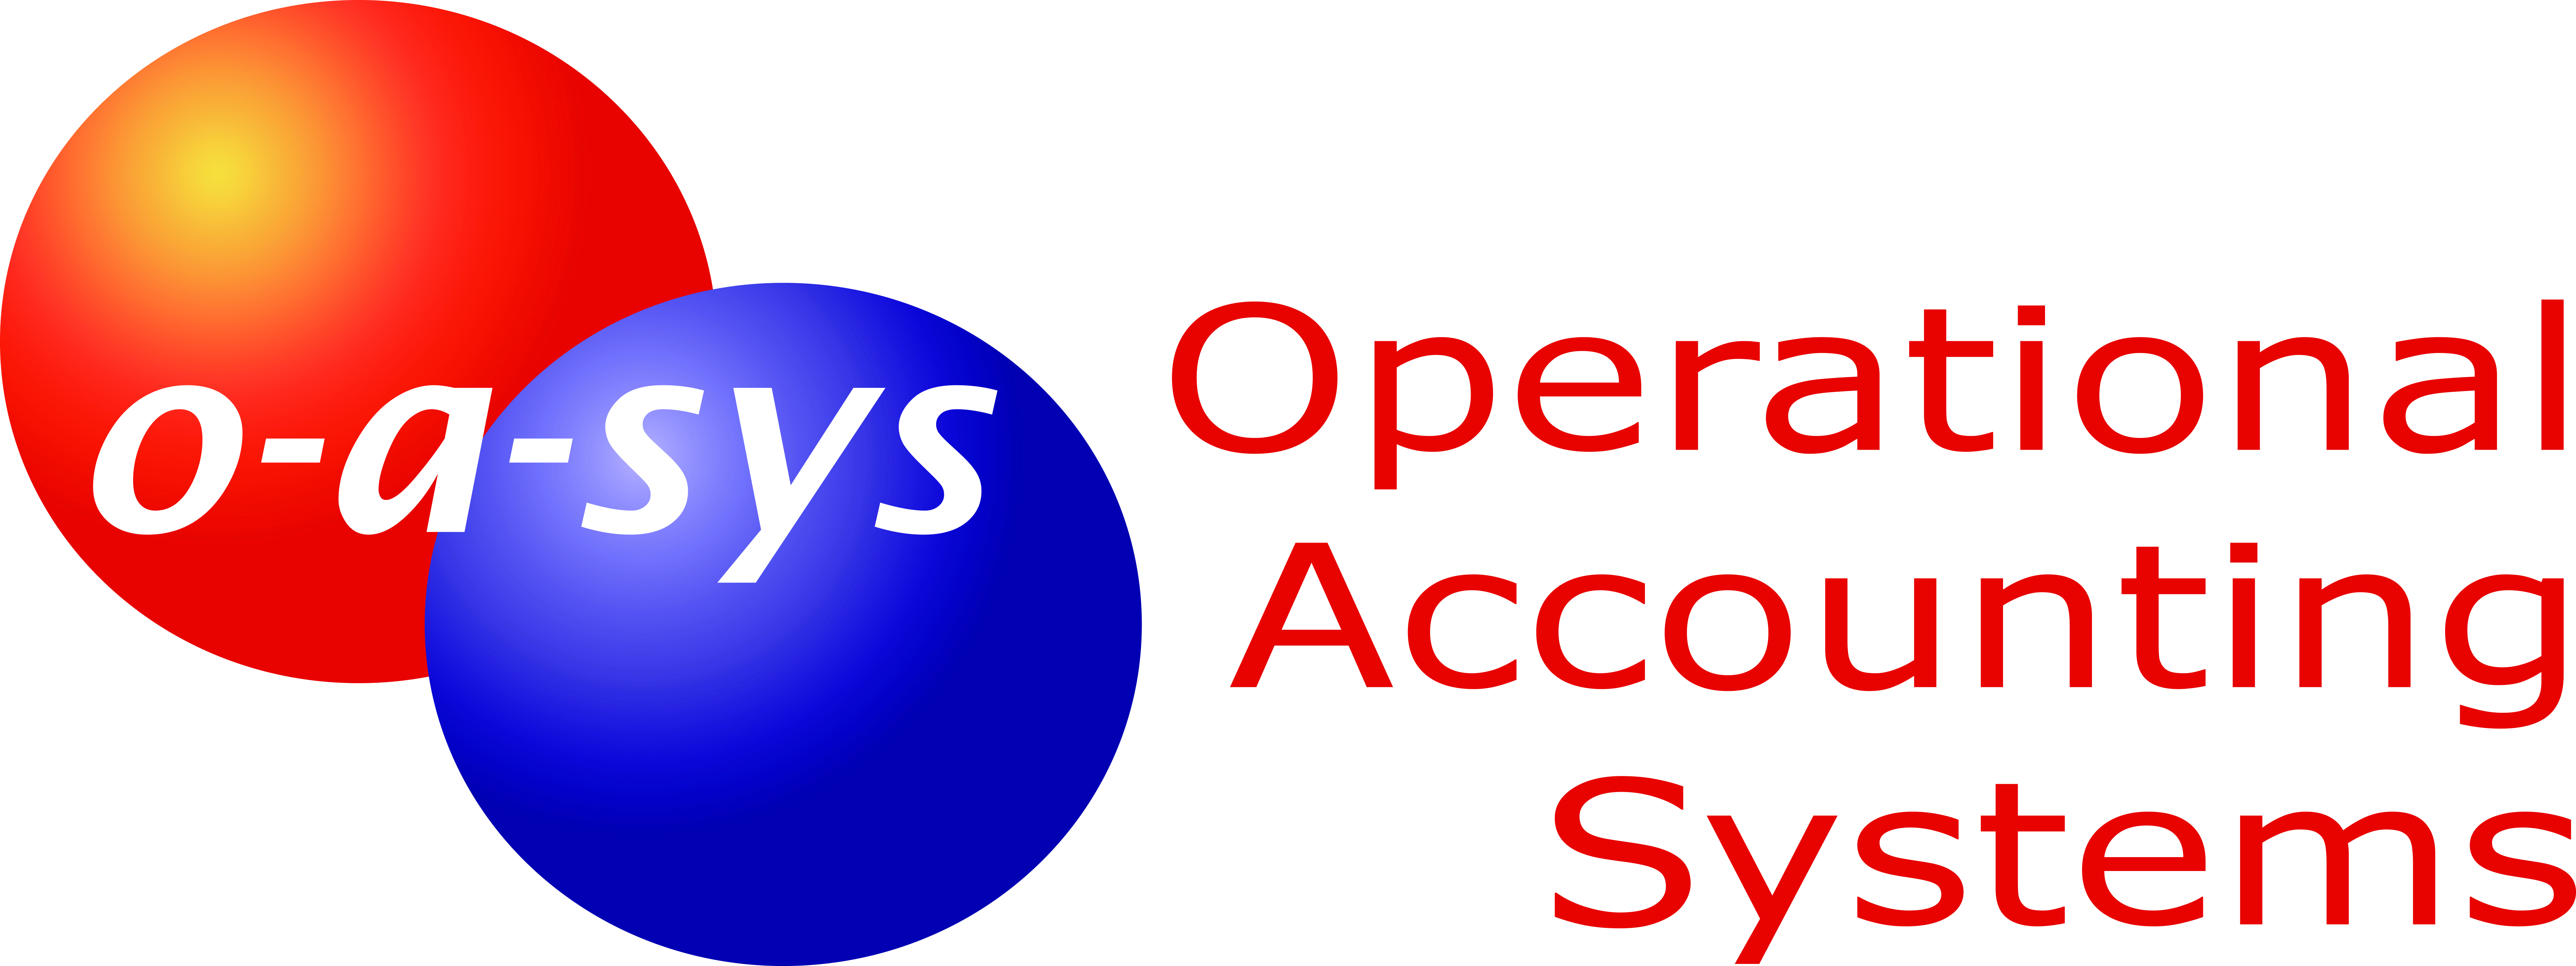 Operational Accounting Systems Limited